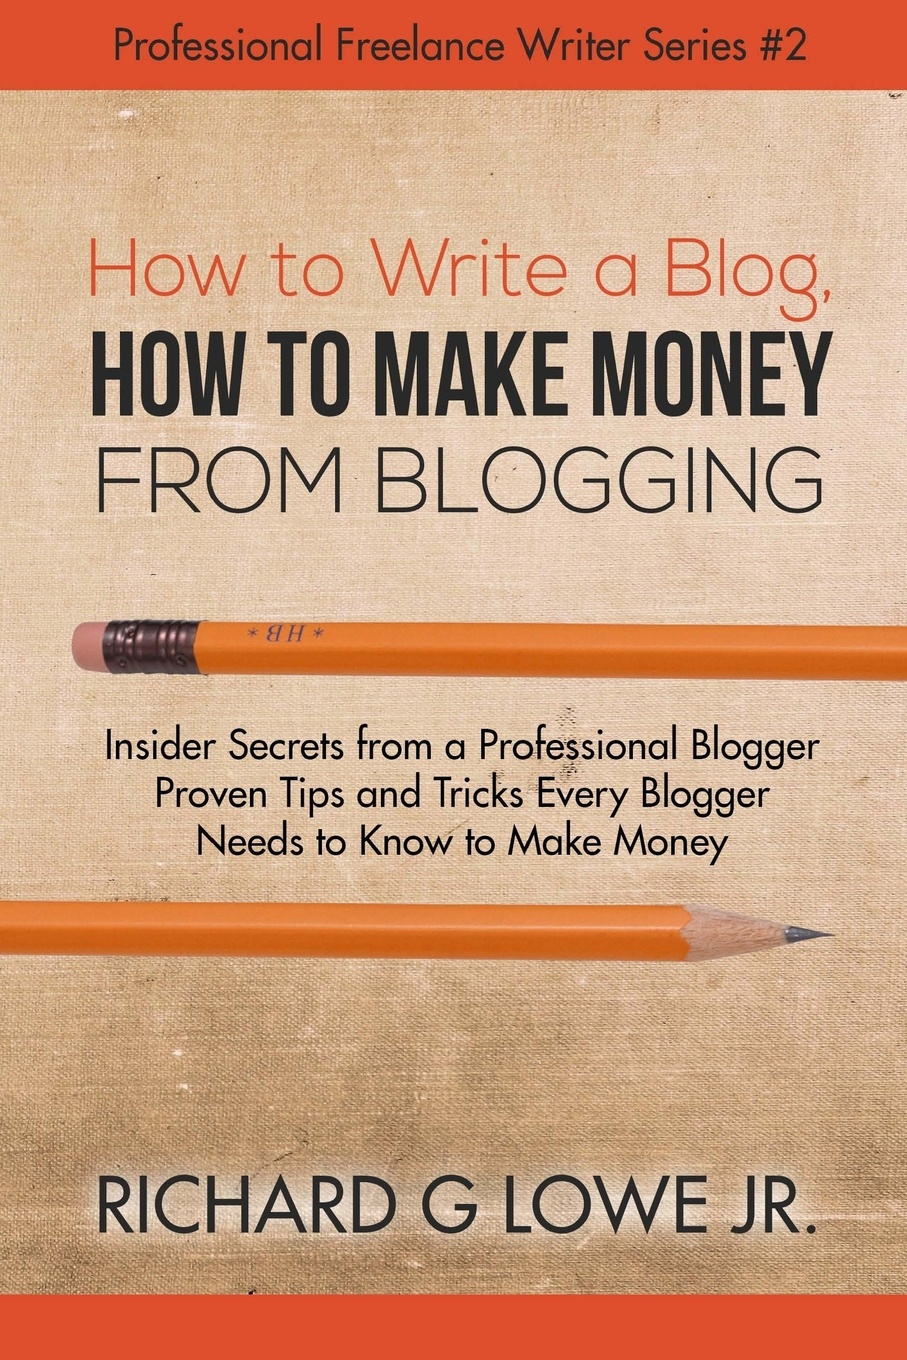 Richard G Lowe Jr How to Write a Blog, How to Make Money from Blogging. Insider Secrets from a Professional Blogger Proven Tips and tricks Every Blogger Needs to Know to Make Money charles schwab jr make money work for you instead of you working for it lessons from a portfolio manager